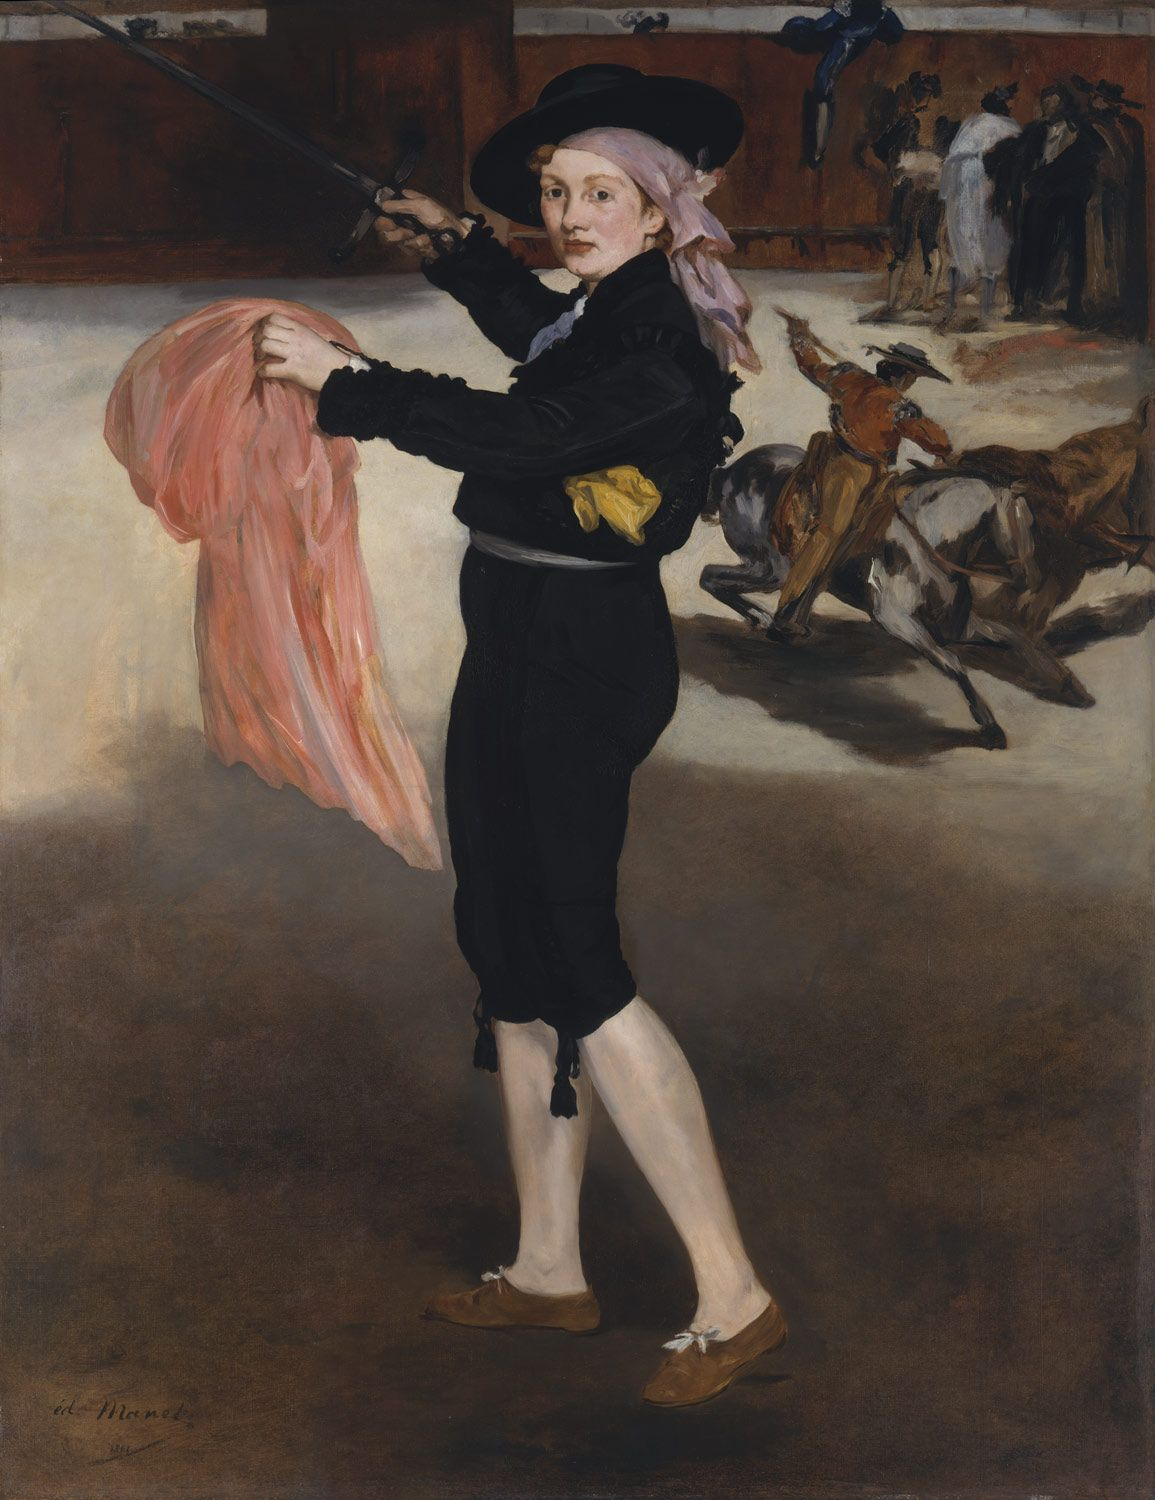 Mademoiselle v in the costume of an espada when this painting was exhibited at the infamous salon des refusés of 1863 a commentator noted